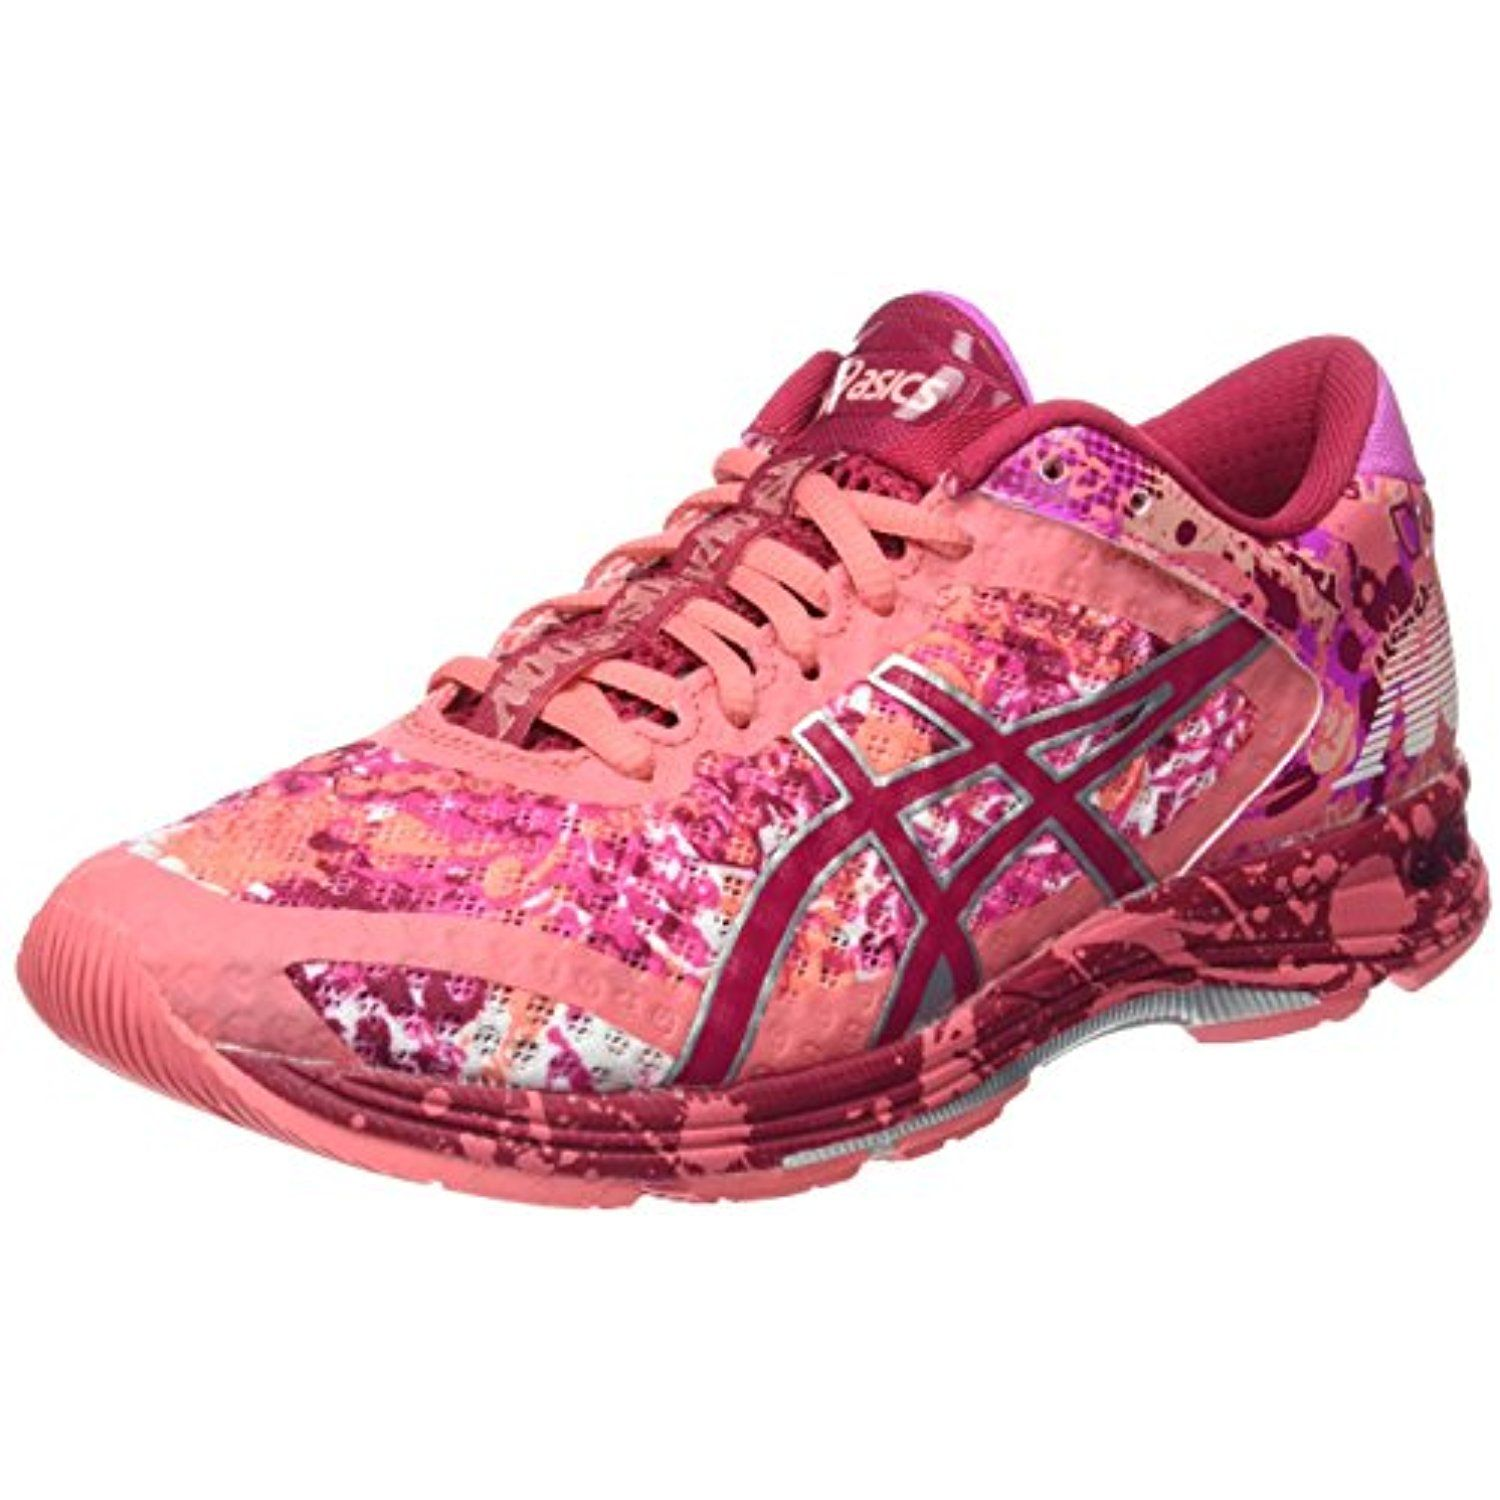 GEL-NOOSA TRI 11 Women's Running Shoes - AW16 -- Read more ...